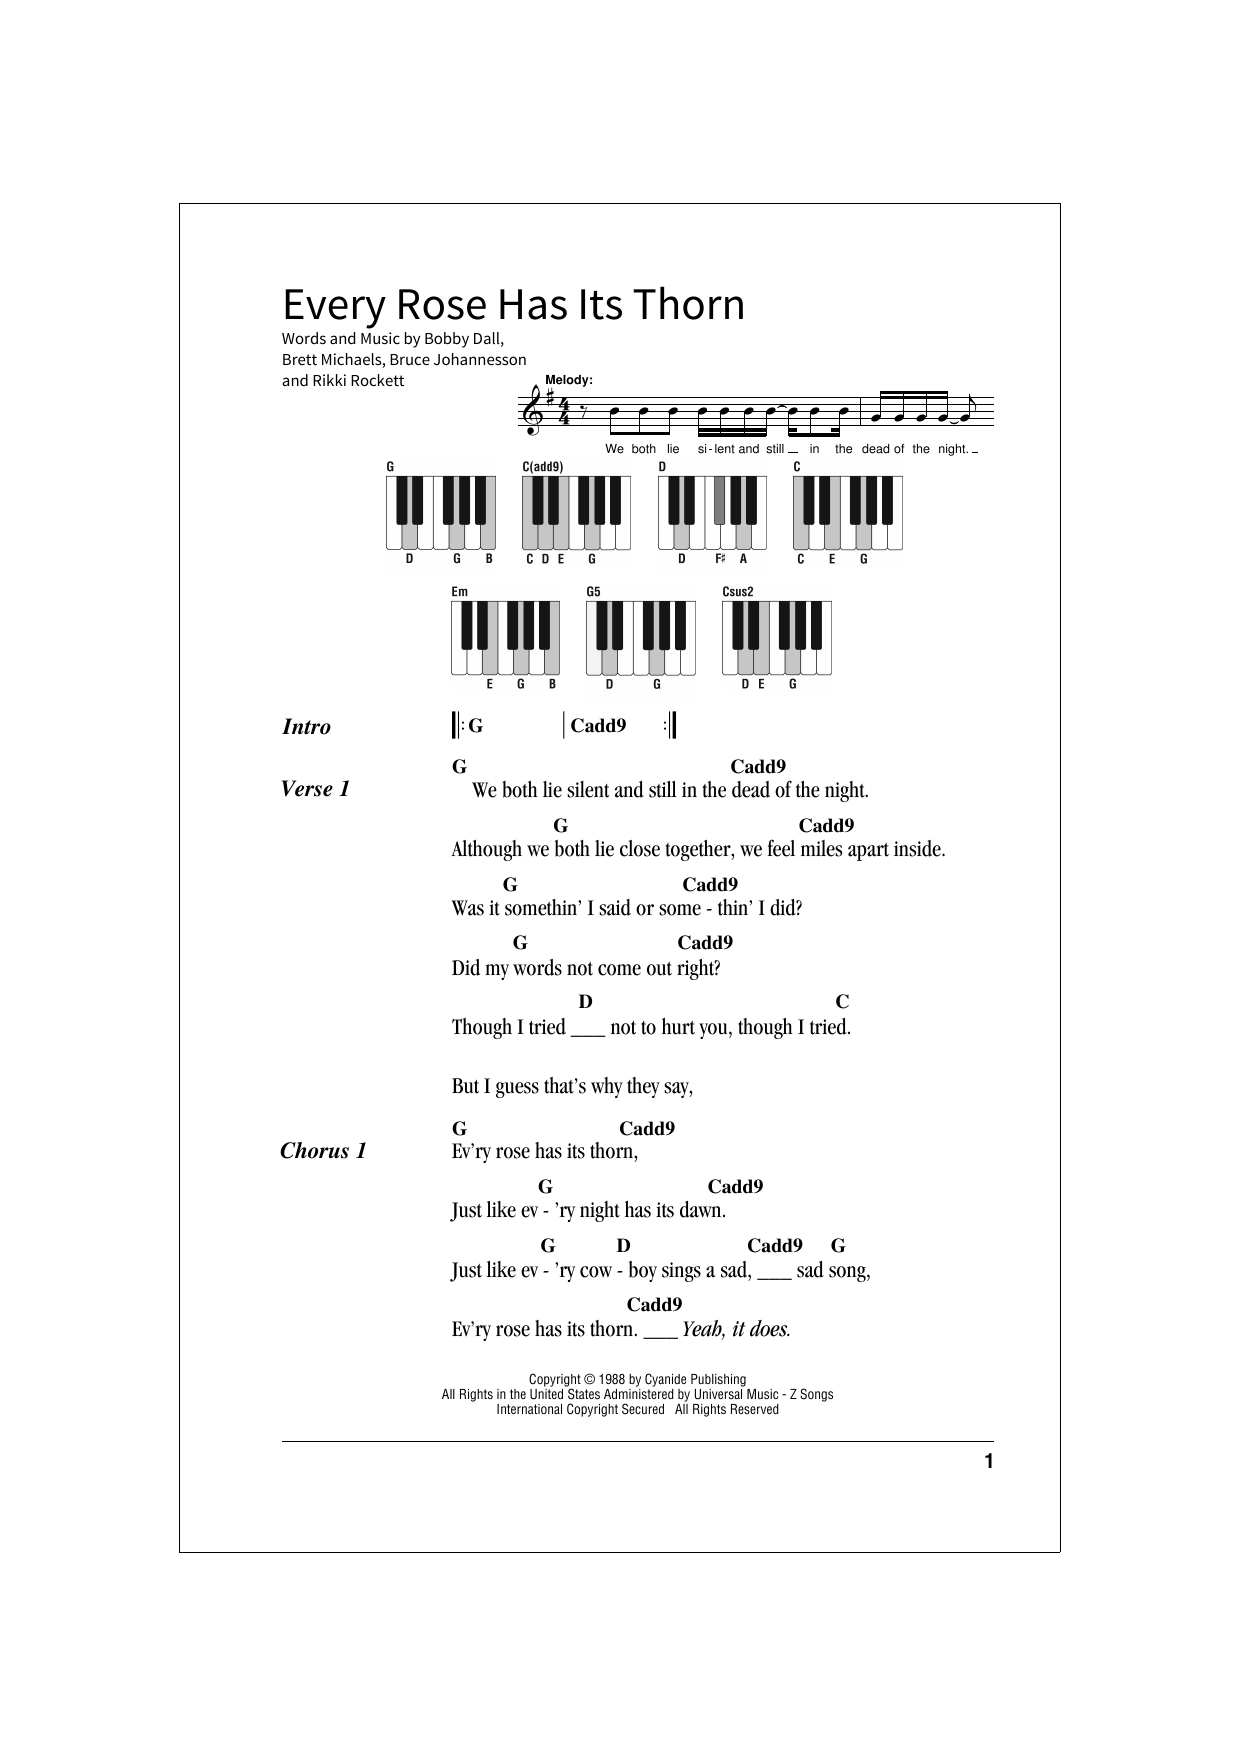 Every Rose Has Its Thorn Sheet Music